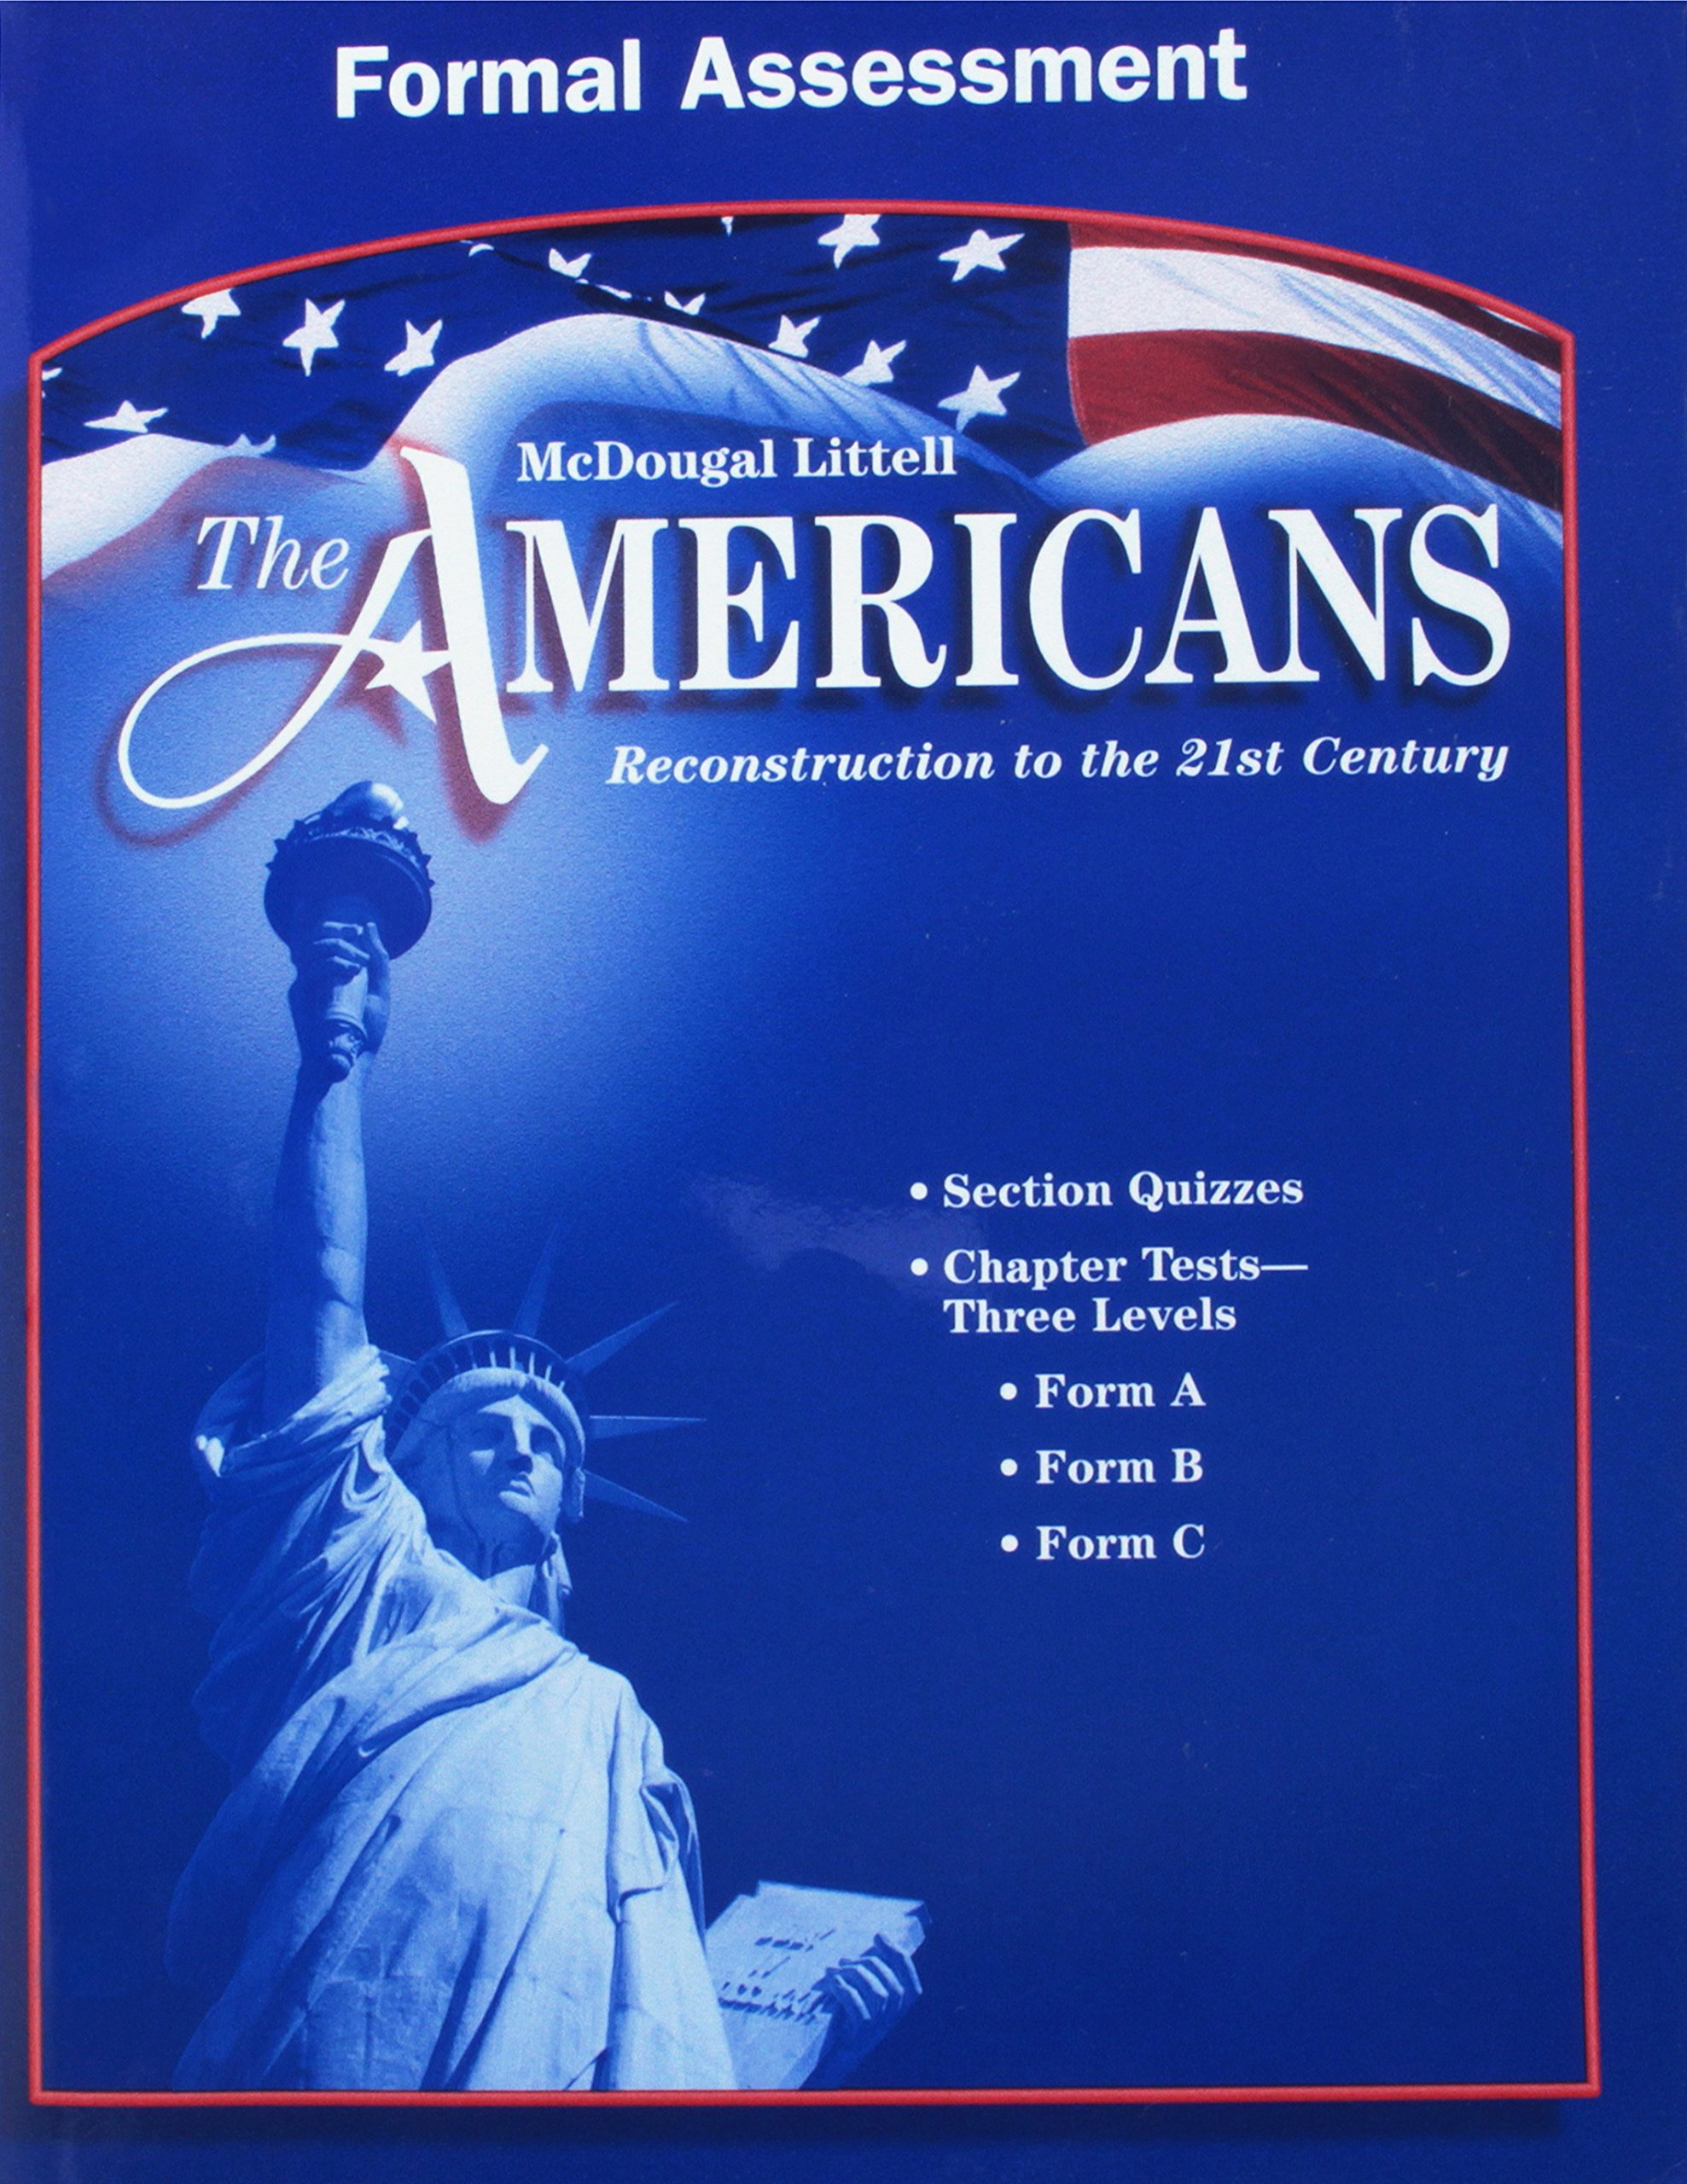 The americans reconstruction to the 21st century formal assessment grades 9 12 paperback teachers edition 2003